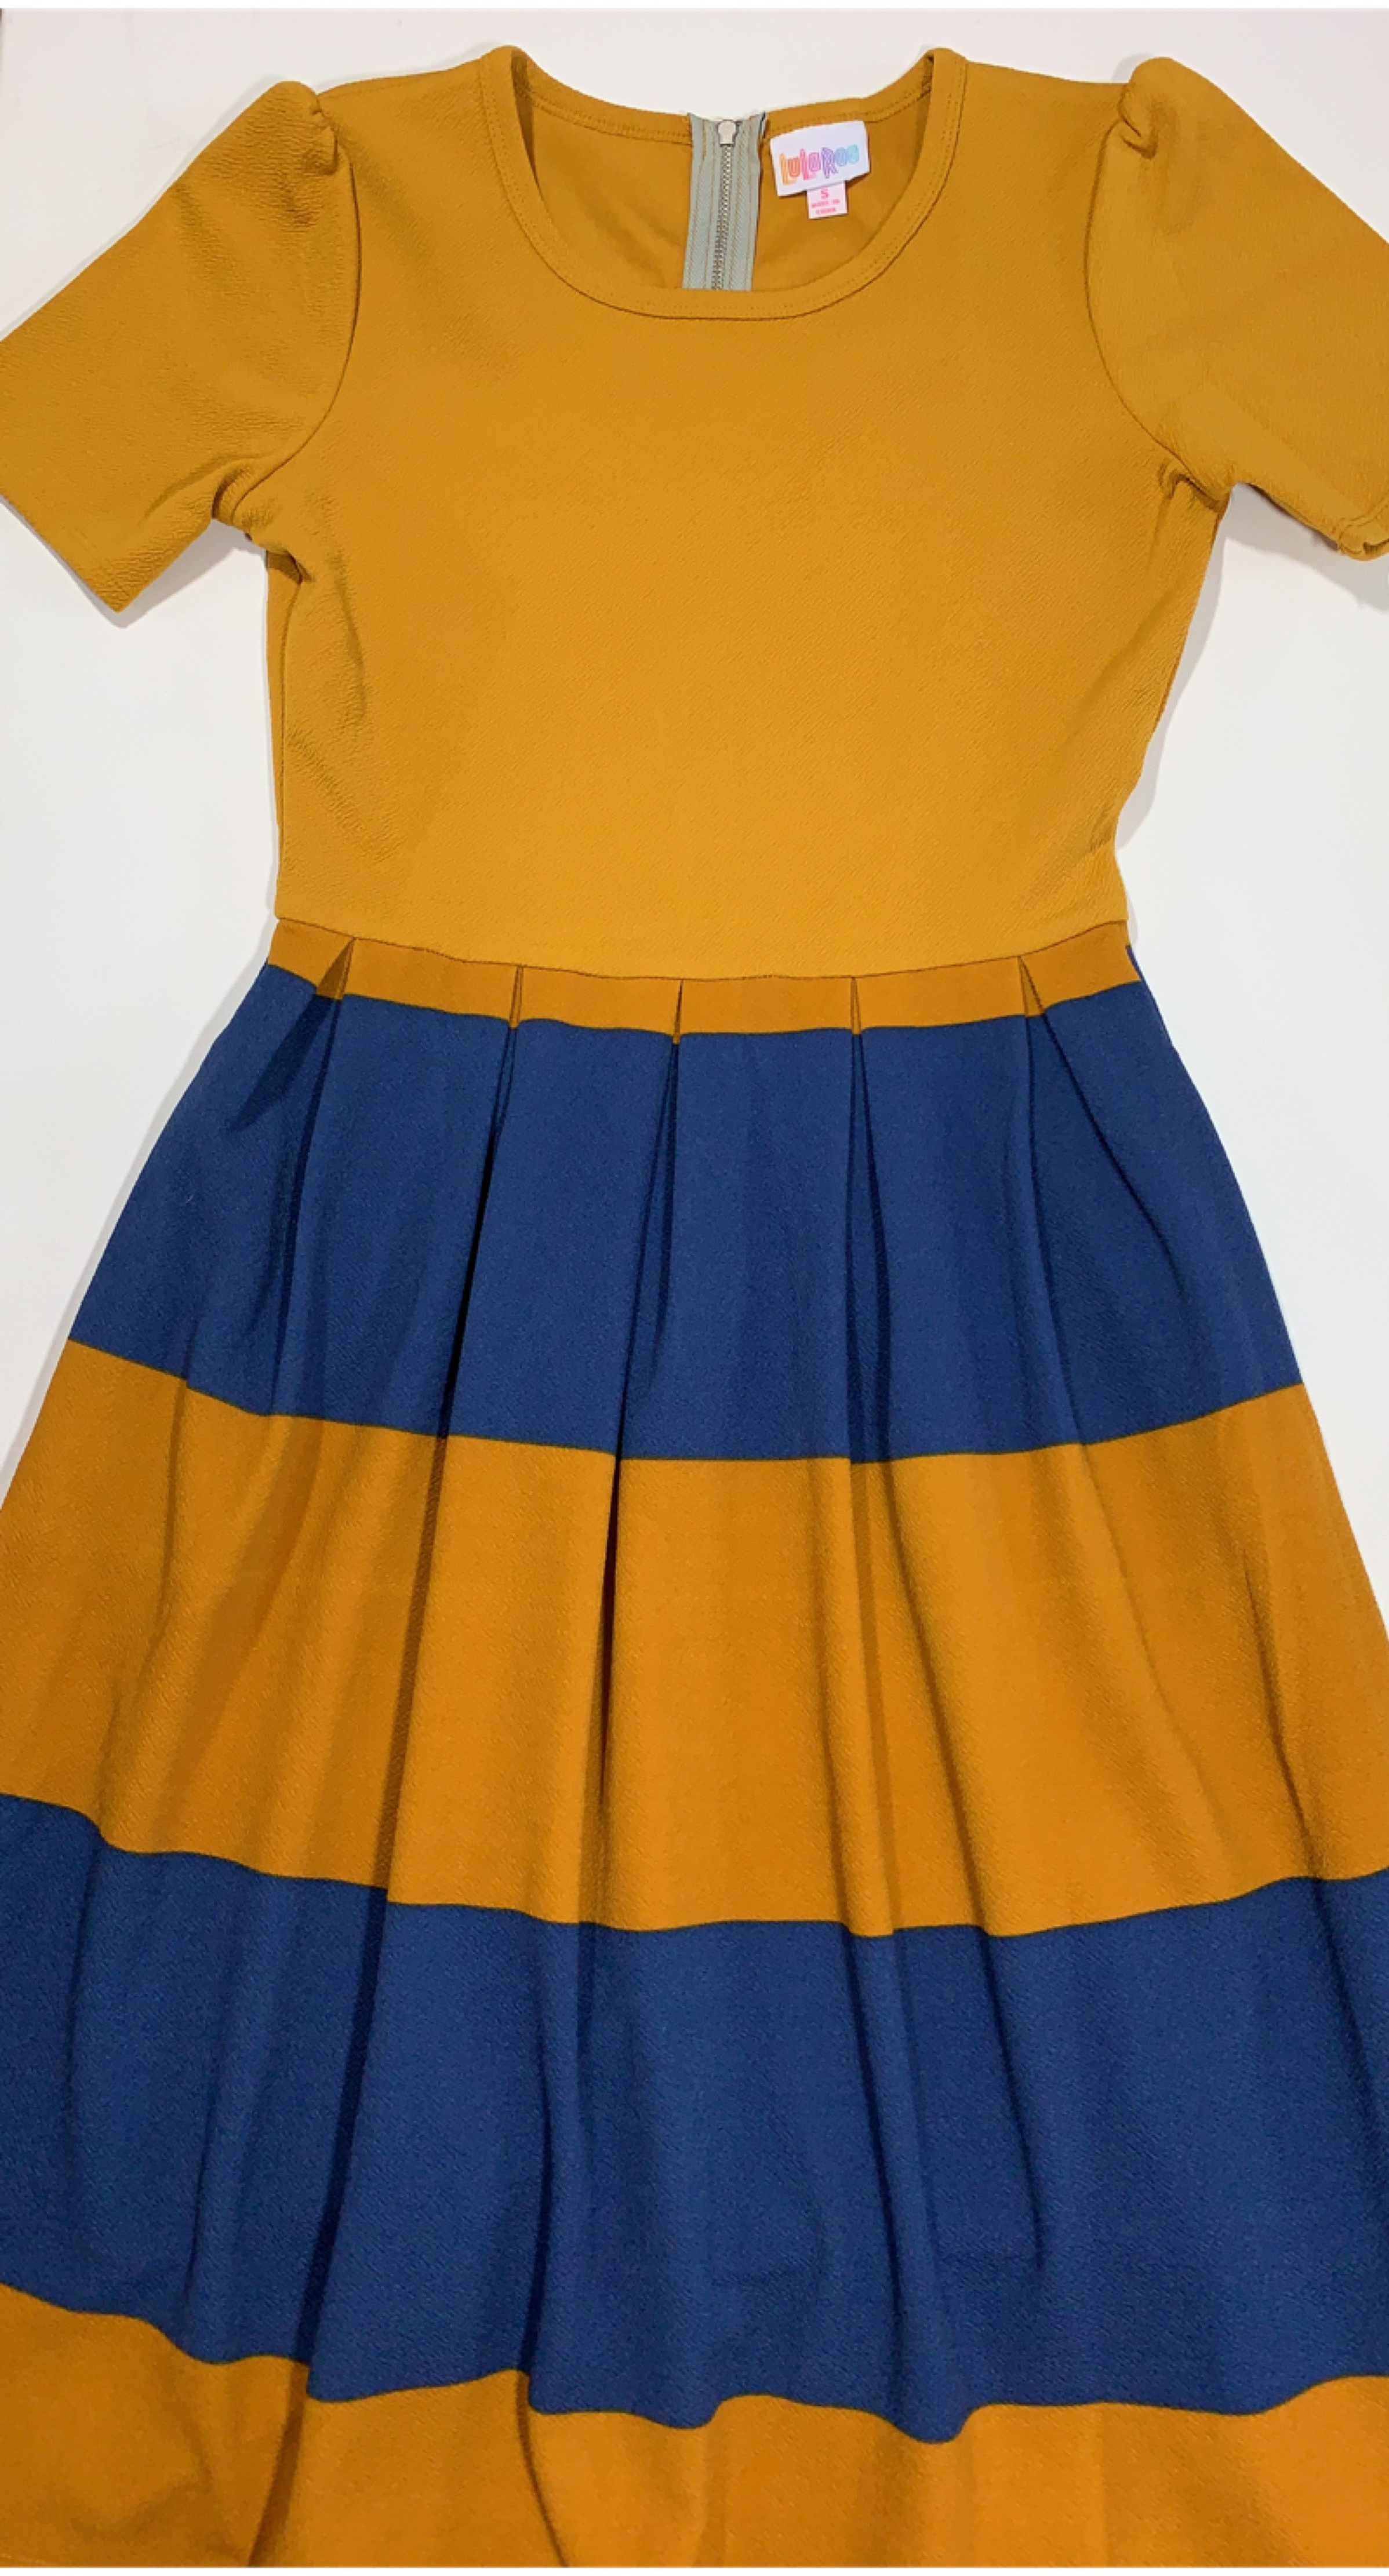 - 1) Determine your starting point or inspiration piece.This box pleated waist dress serves as a great starting point with a larger print striped skirt.2) Choose a color or two that you like in the inspiration piece to pair with a coordinating pattern.